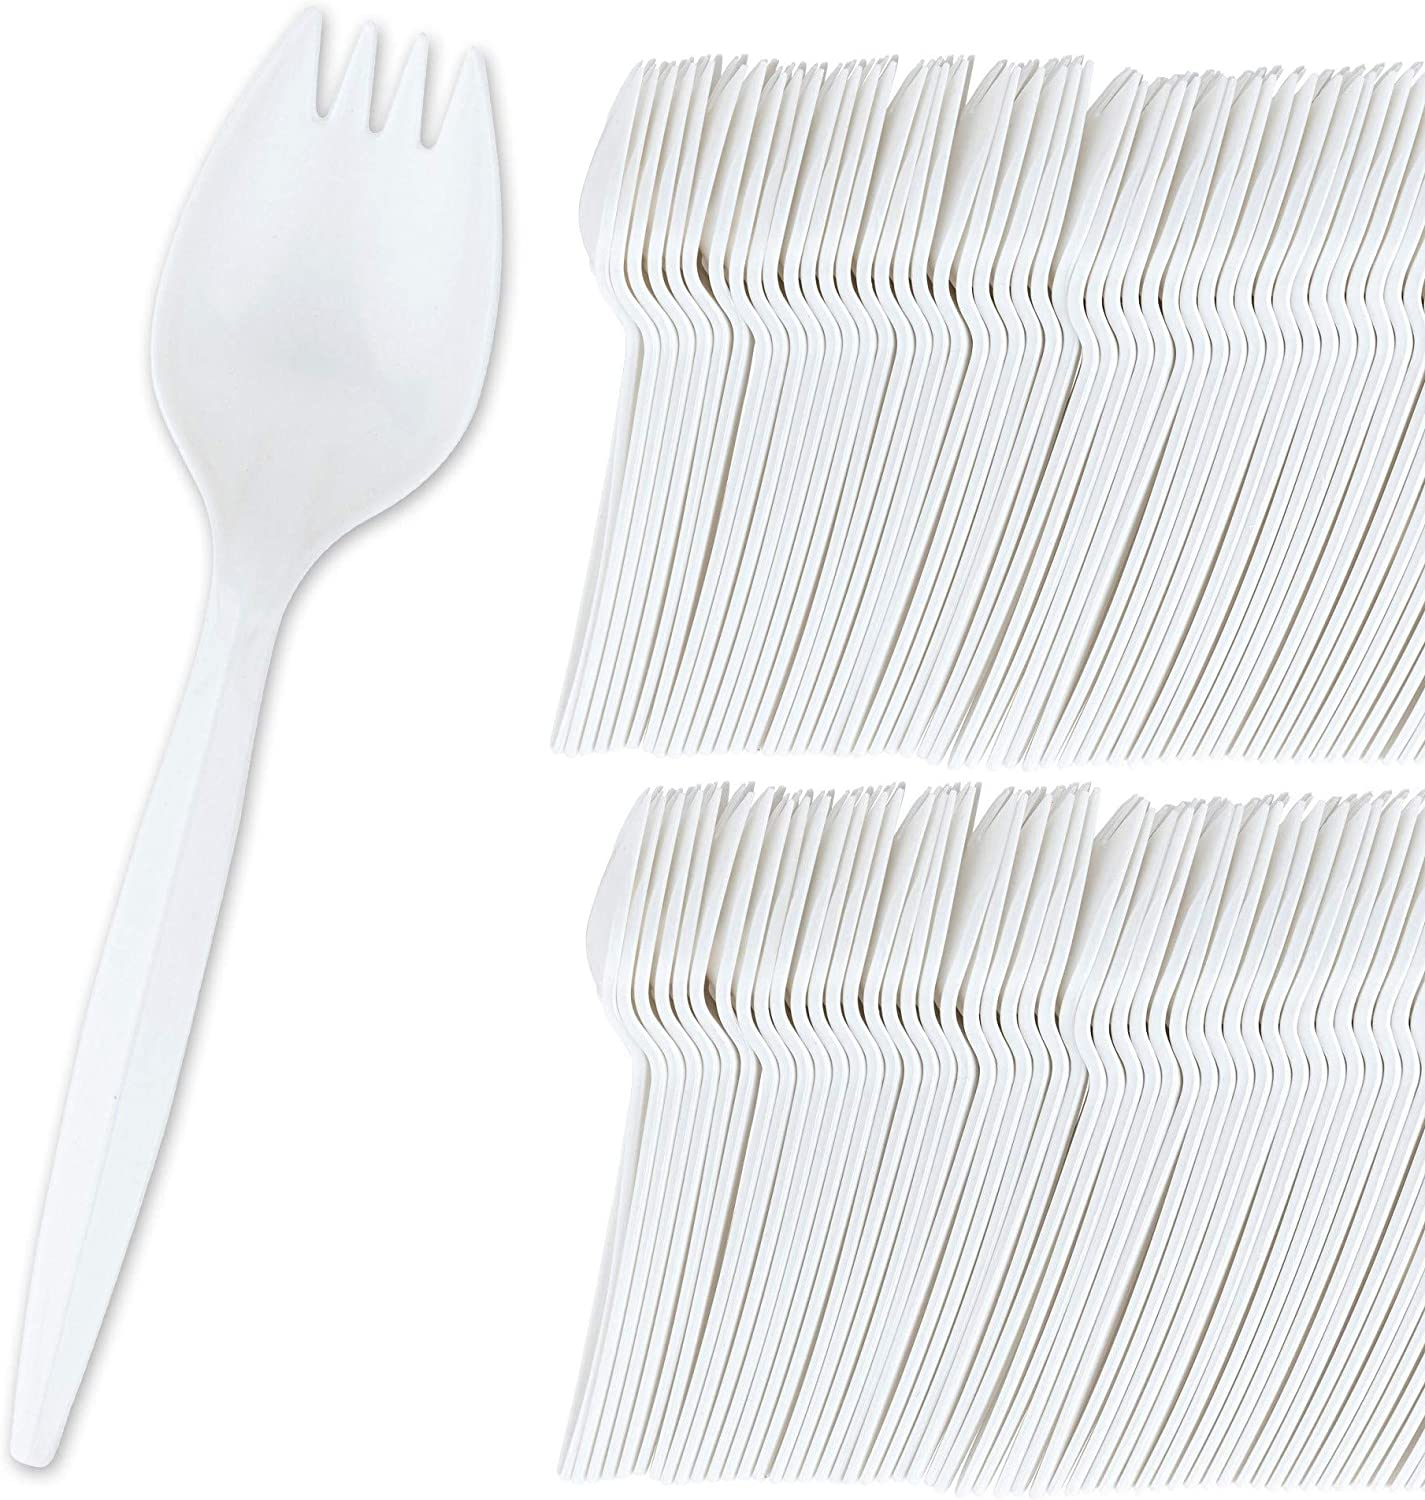 Stock Your Home 100 Disposable Sporks, White Plastic Sporks – Kid Safe 2 in 1 Utensils – Fork Spoon Perfect for School Lunch, Picnics, Catered Events, Restaurants and Kids Birthday Parties